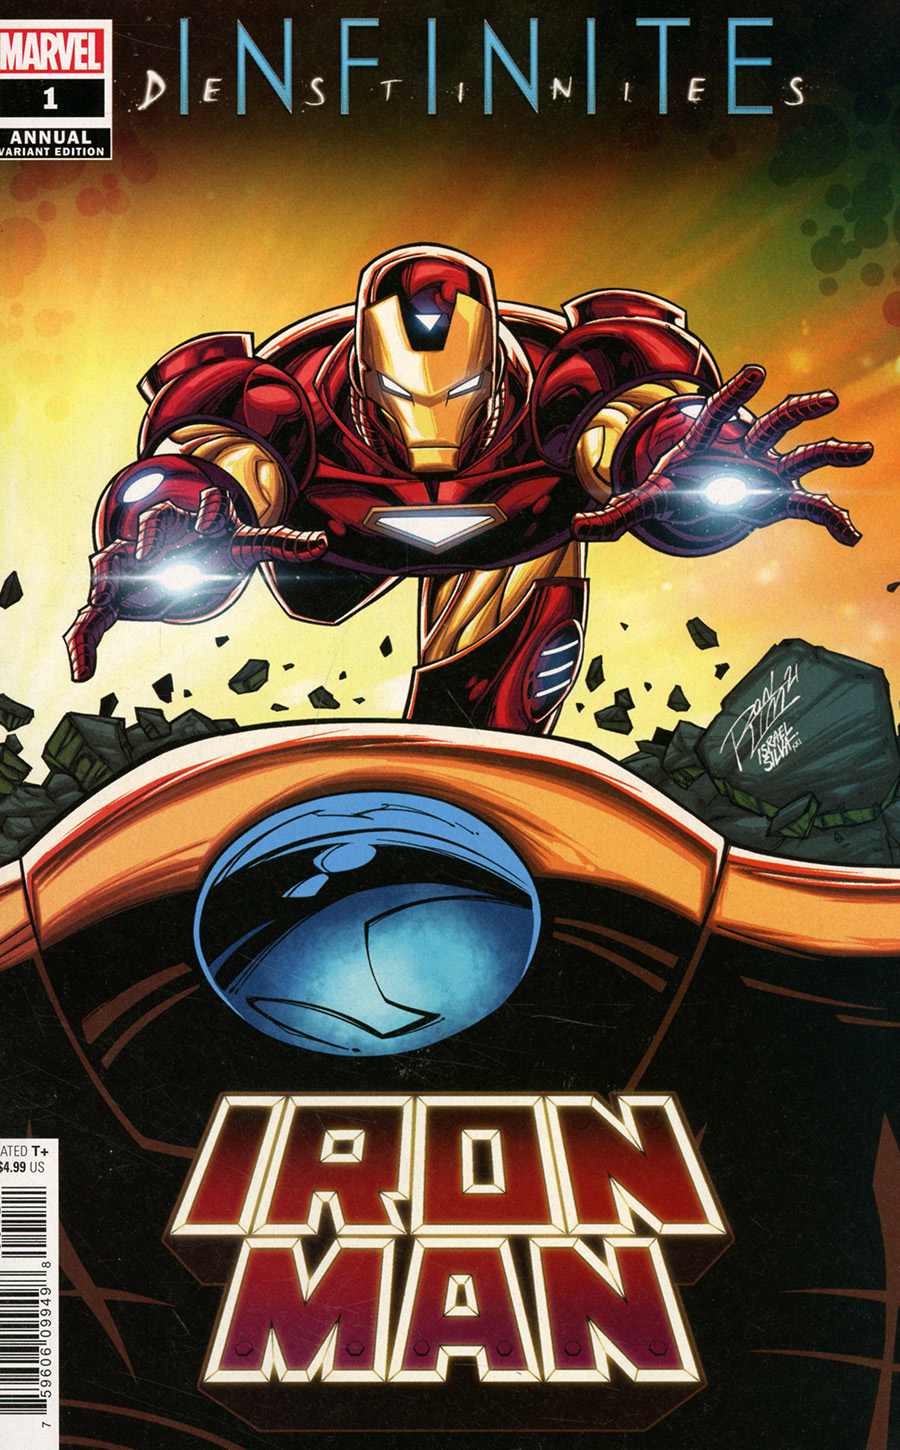 Iron Man Vol 6 Annual #1 Cover B Variant Ron Lim Connecting Cover (Infinite Destinies Tie-In)